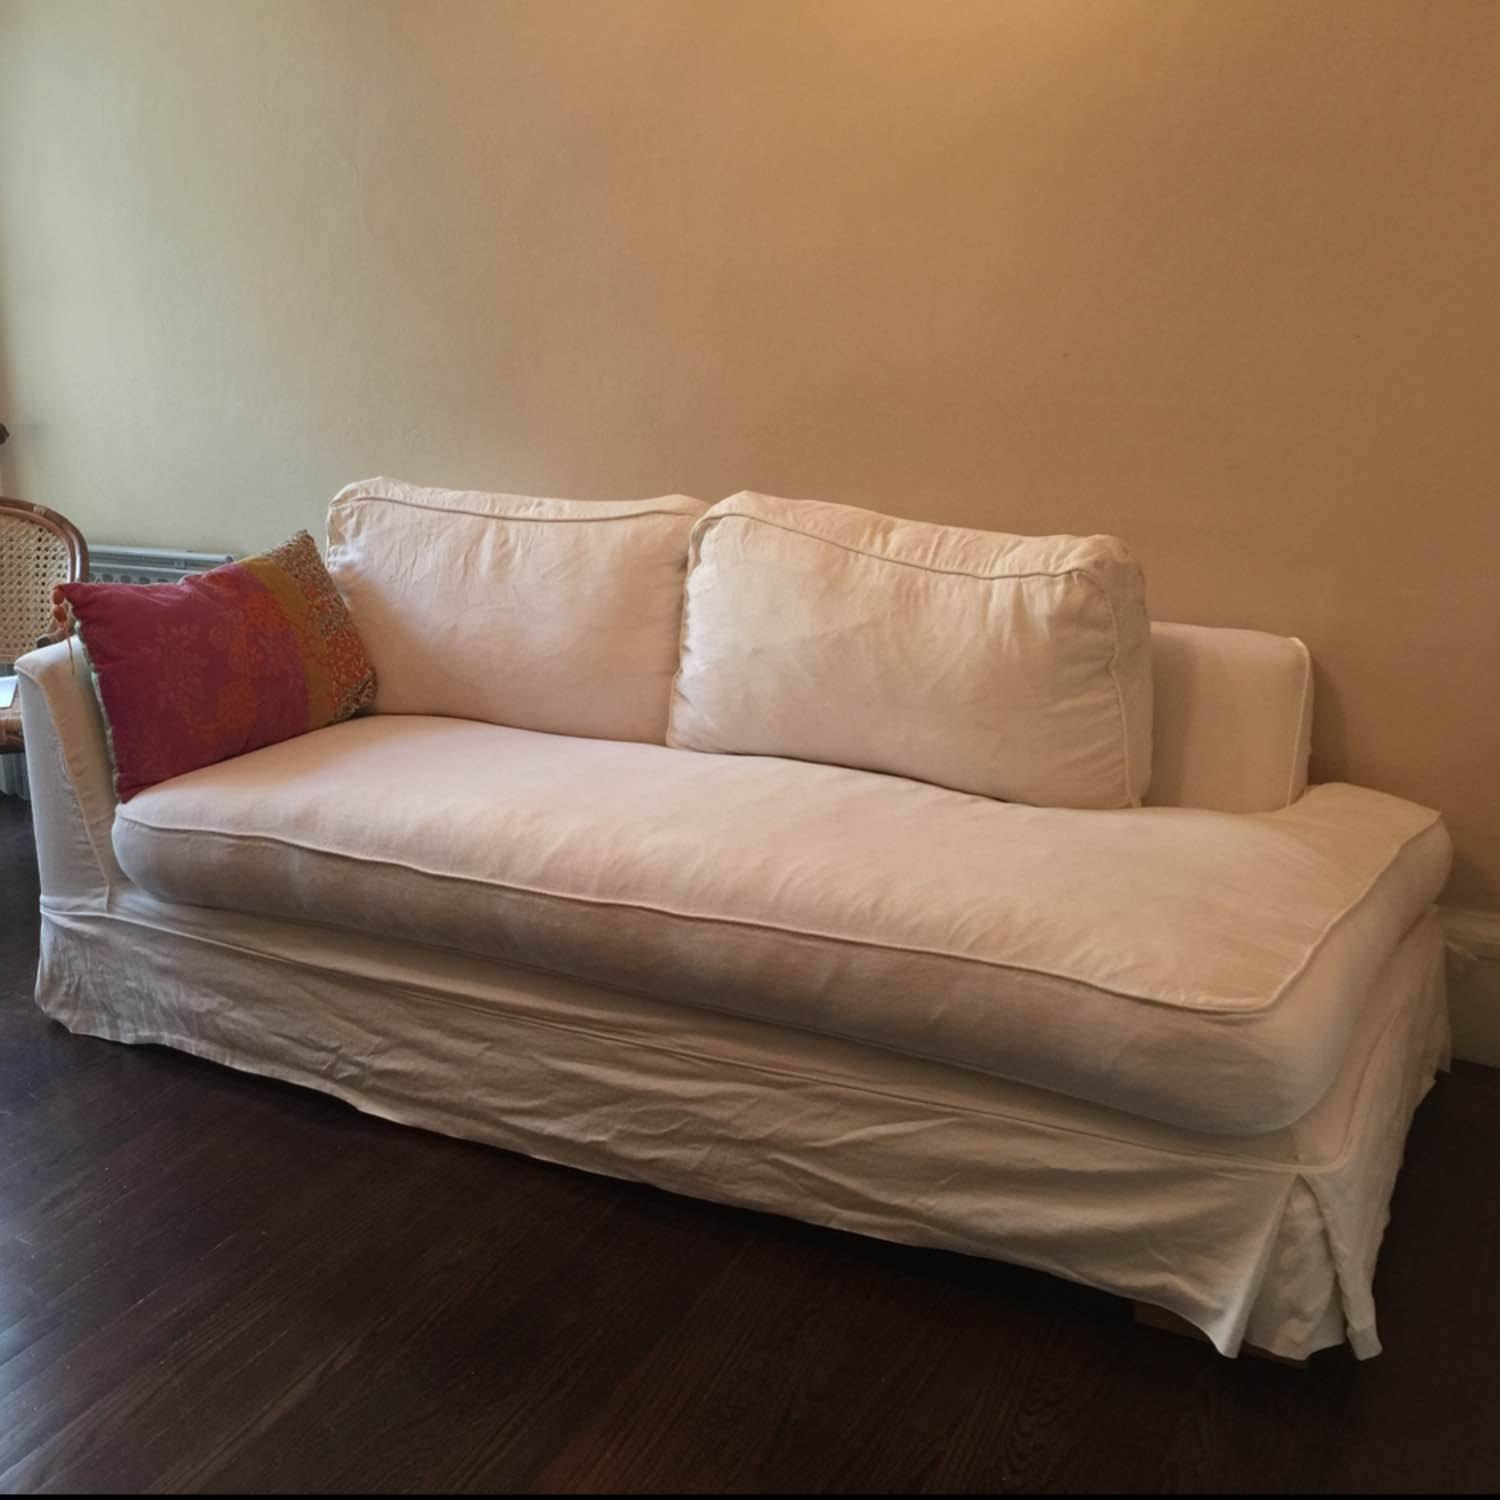 Rachel Ashwell Shabby Chic Sectional Sofa: For Sale In San Intended For Shabby Chic Sectional Sofas (View 7 of 15)